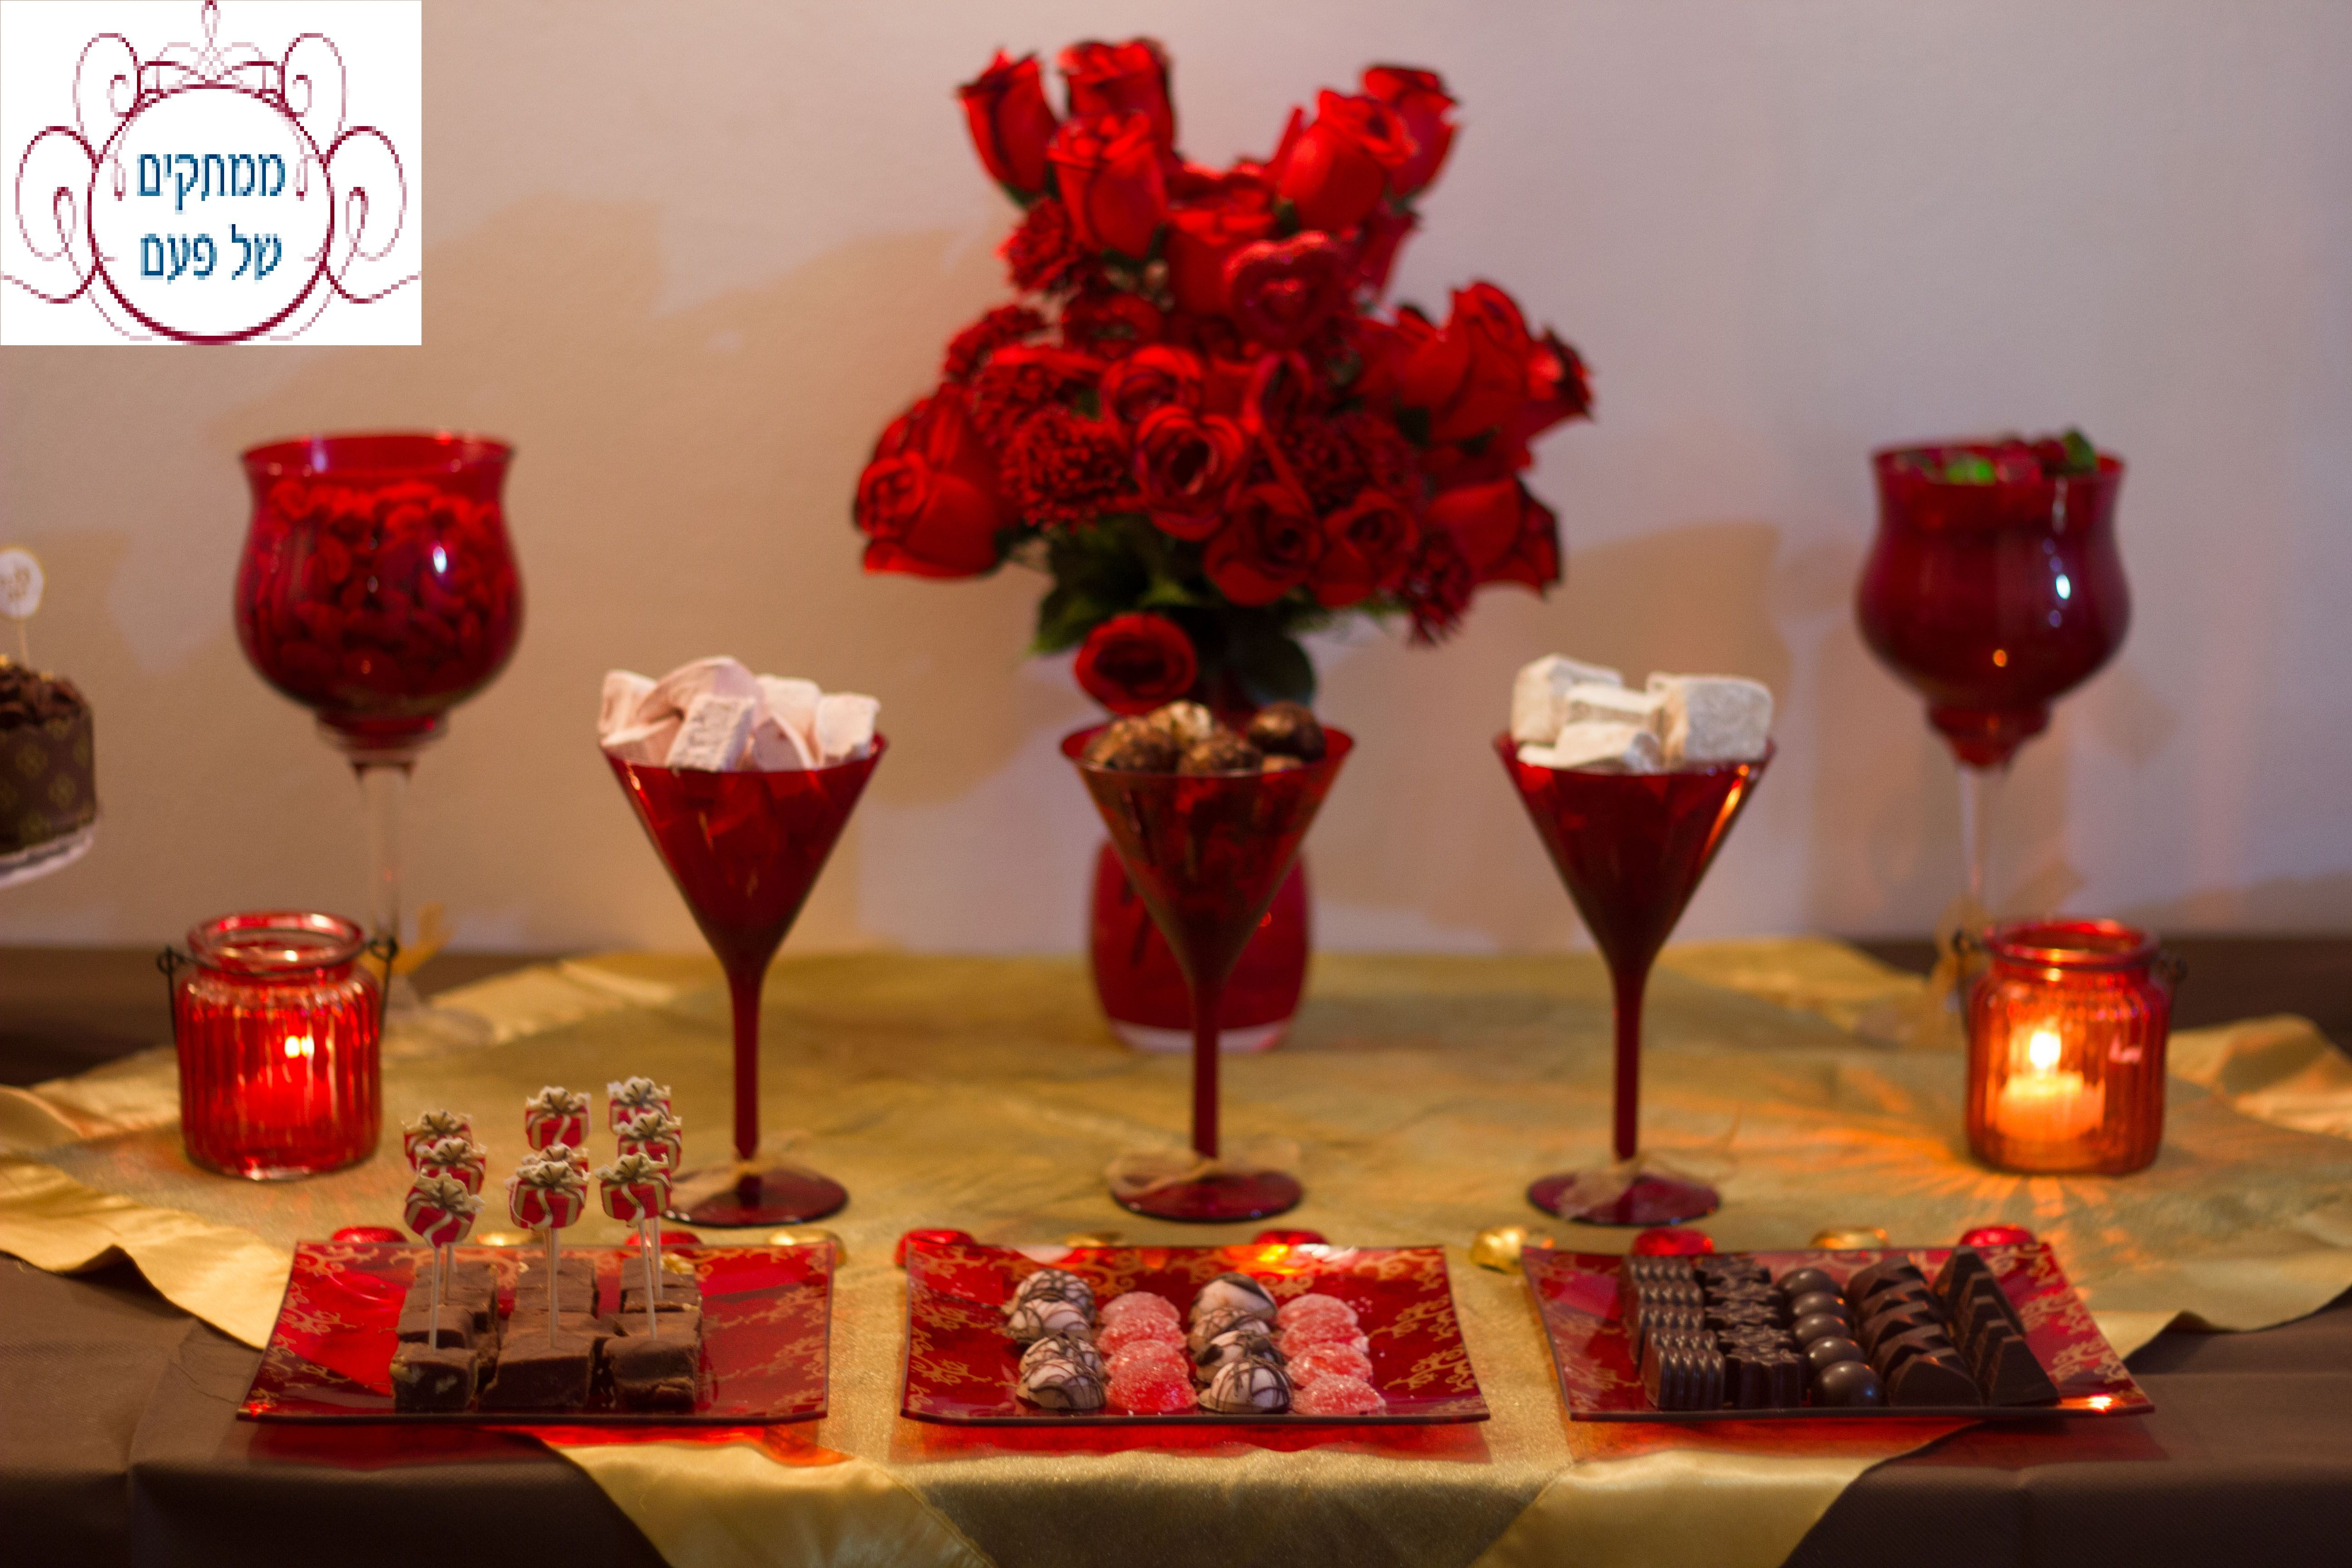 Pin By Adi Endevelt ממתקים של פעם On Red Wine Glass Glassware Tableware